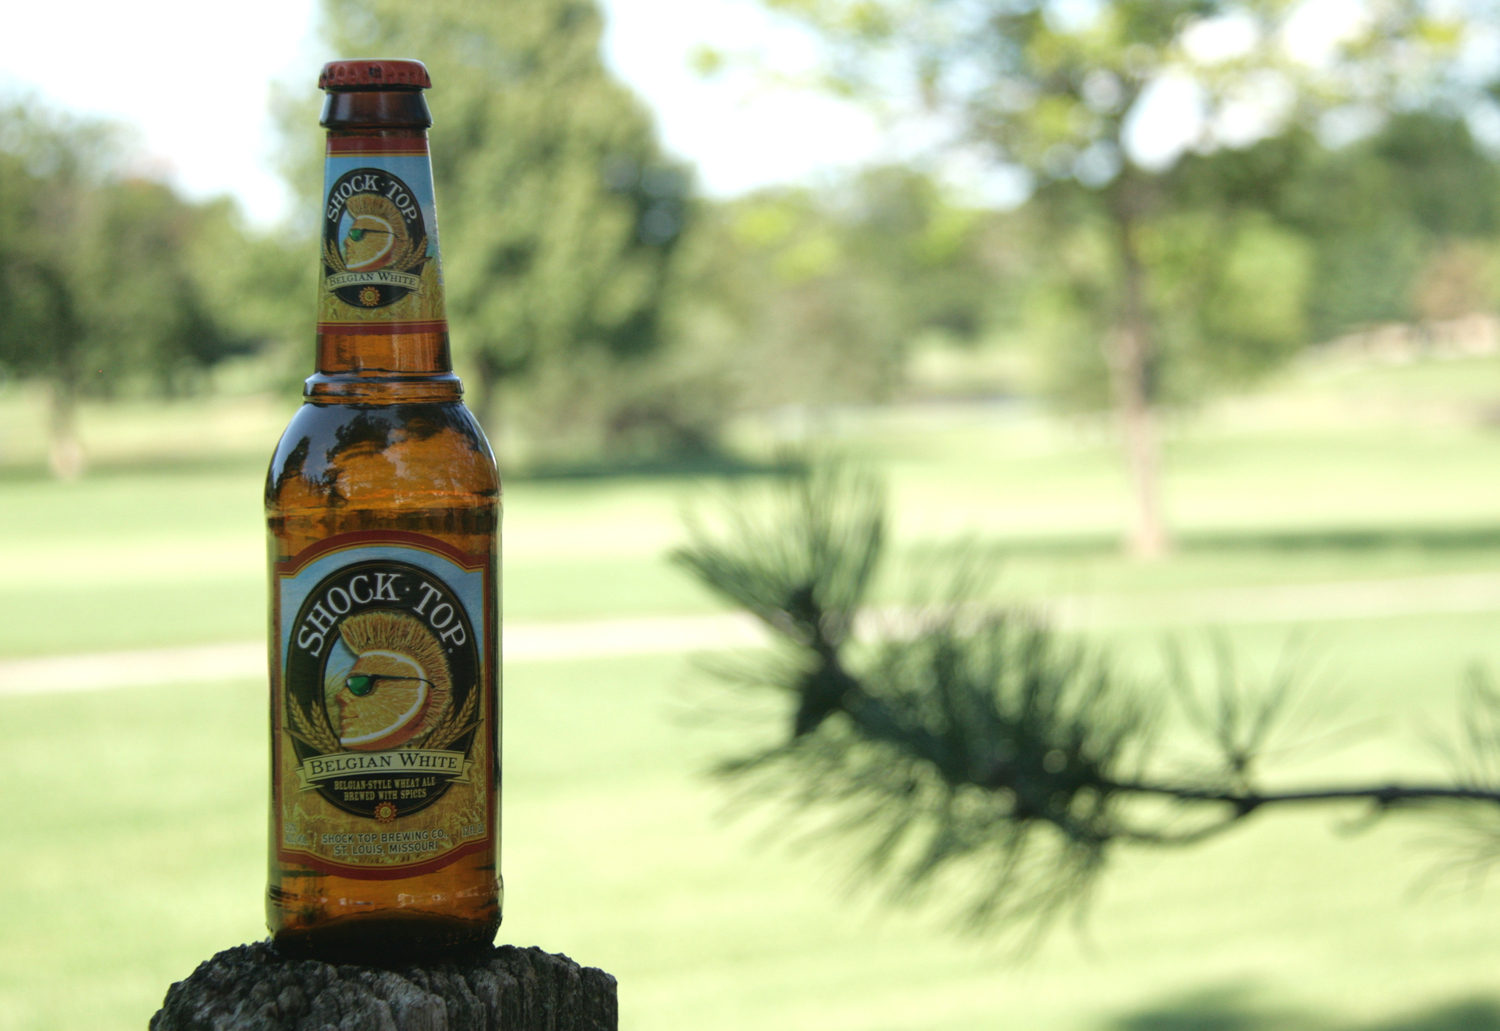 Take Shock Top summer beer belgian white to the park.